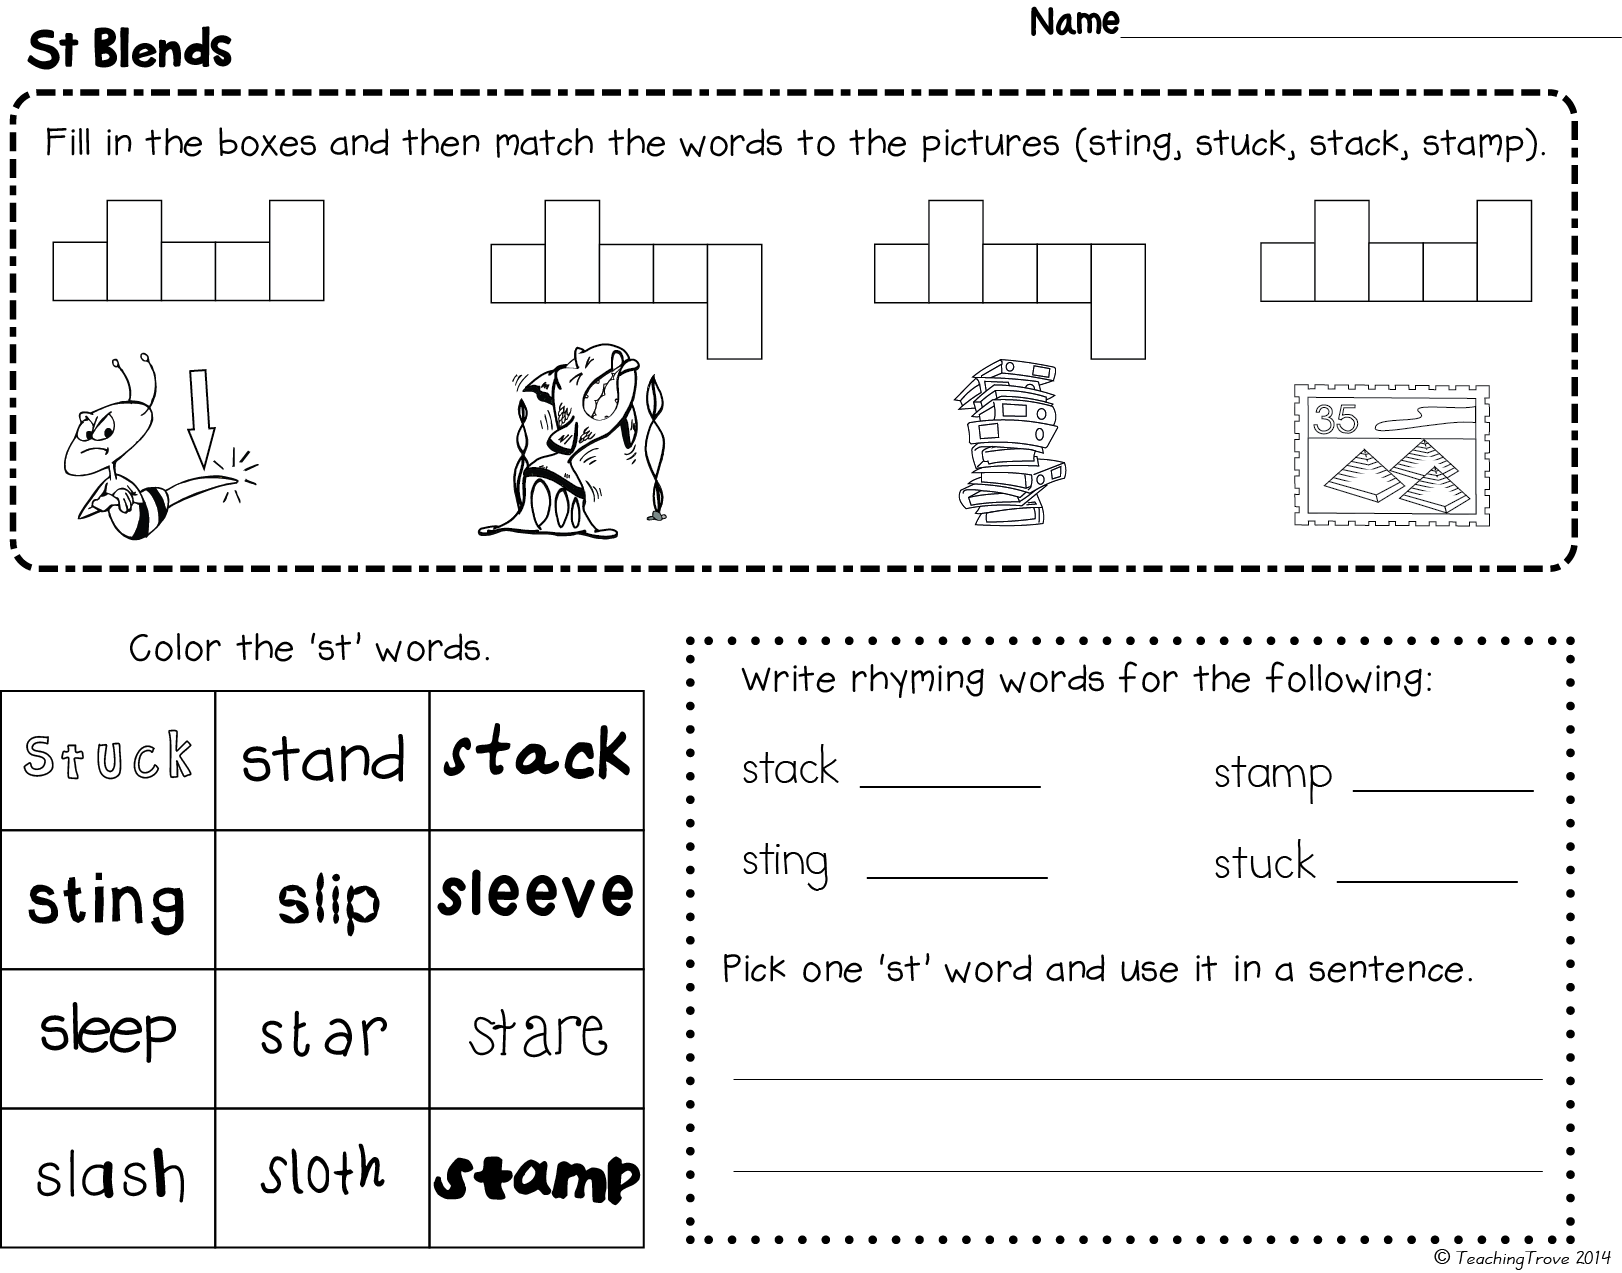 Uncategorized Blends Worksheets blends worksheets s l and r tyxgb76ajthis there blends